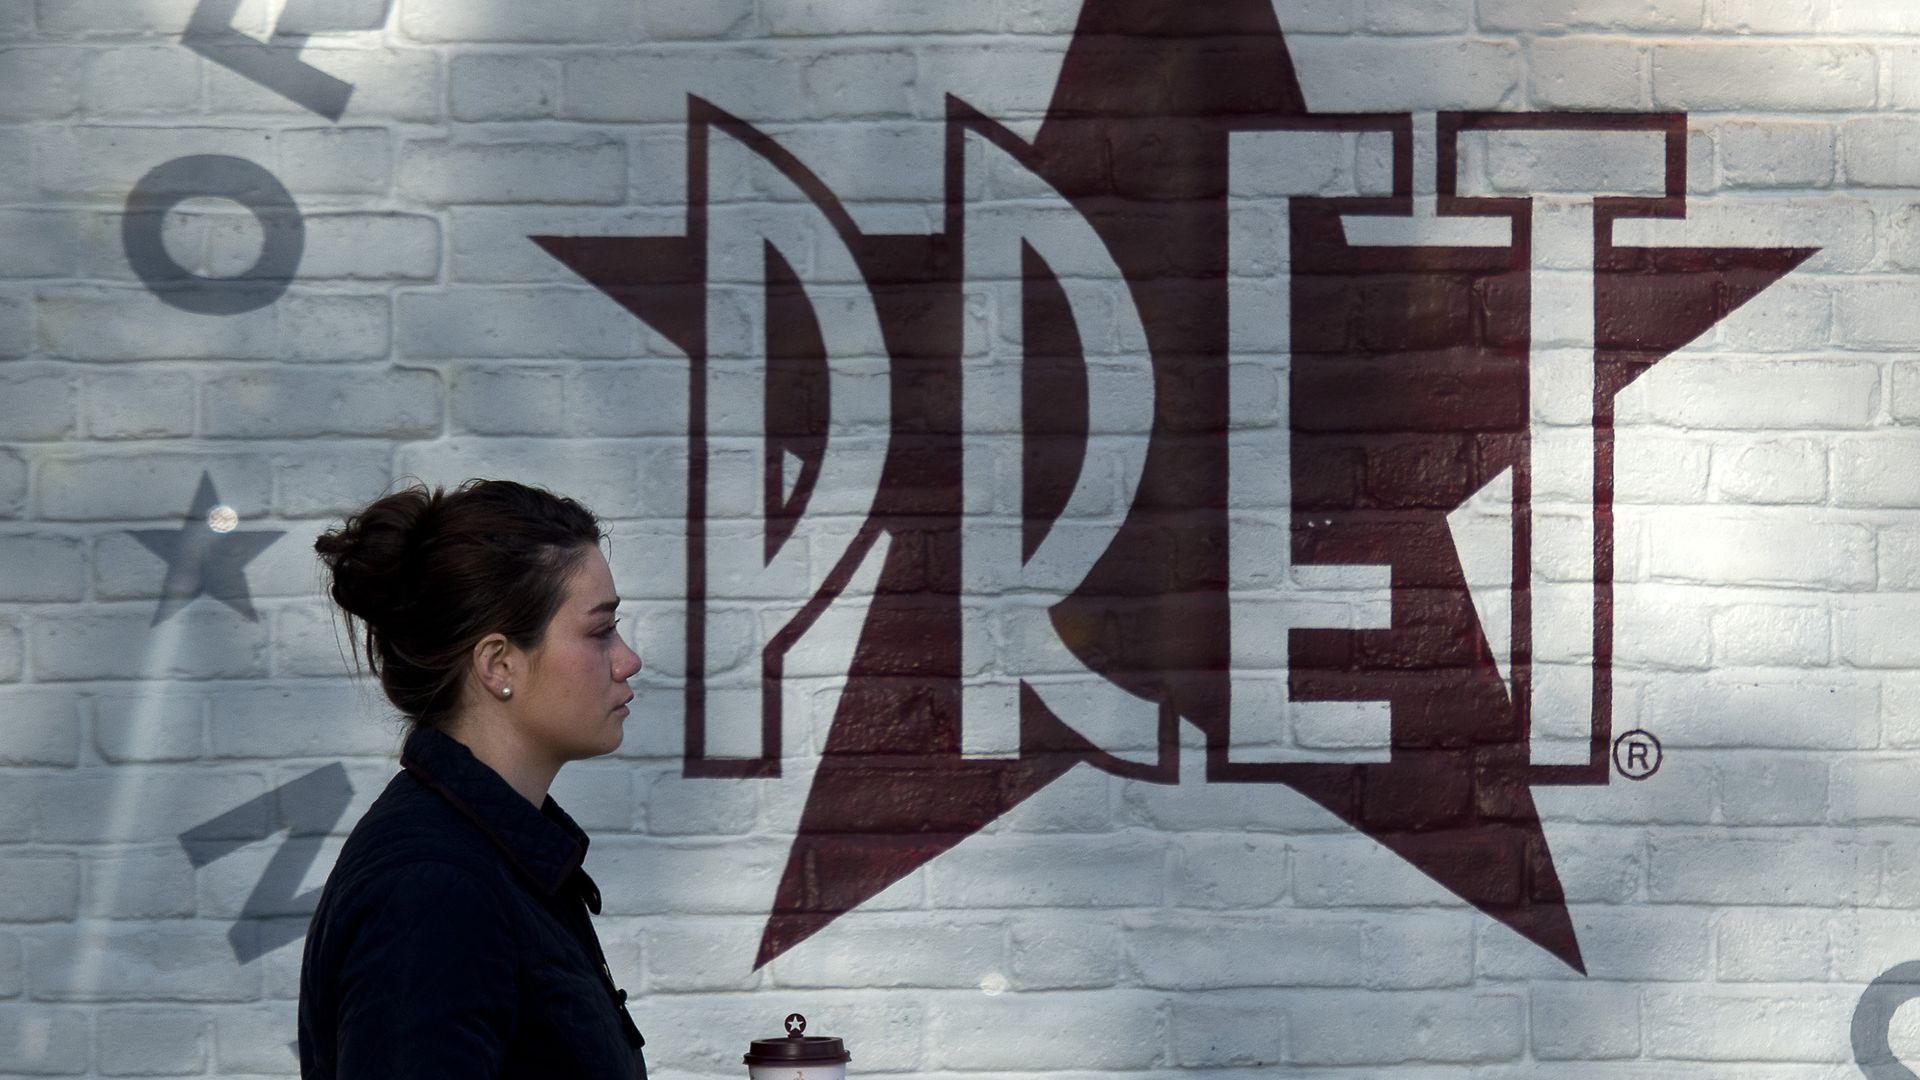 Report: JAB to expand food empire with Pret a Manger